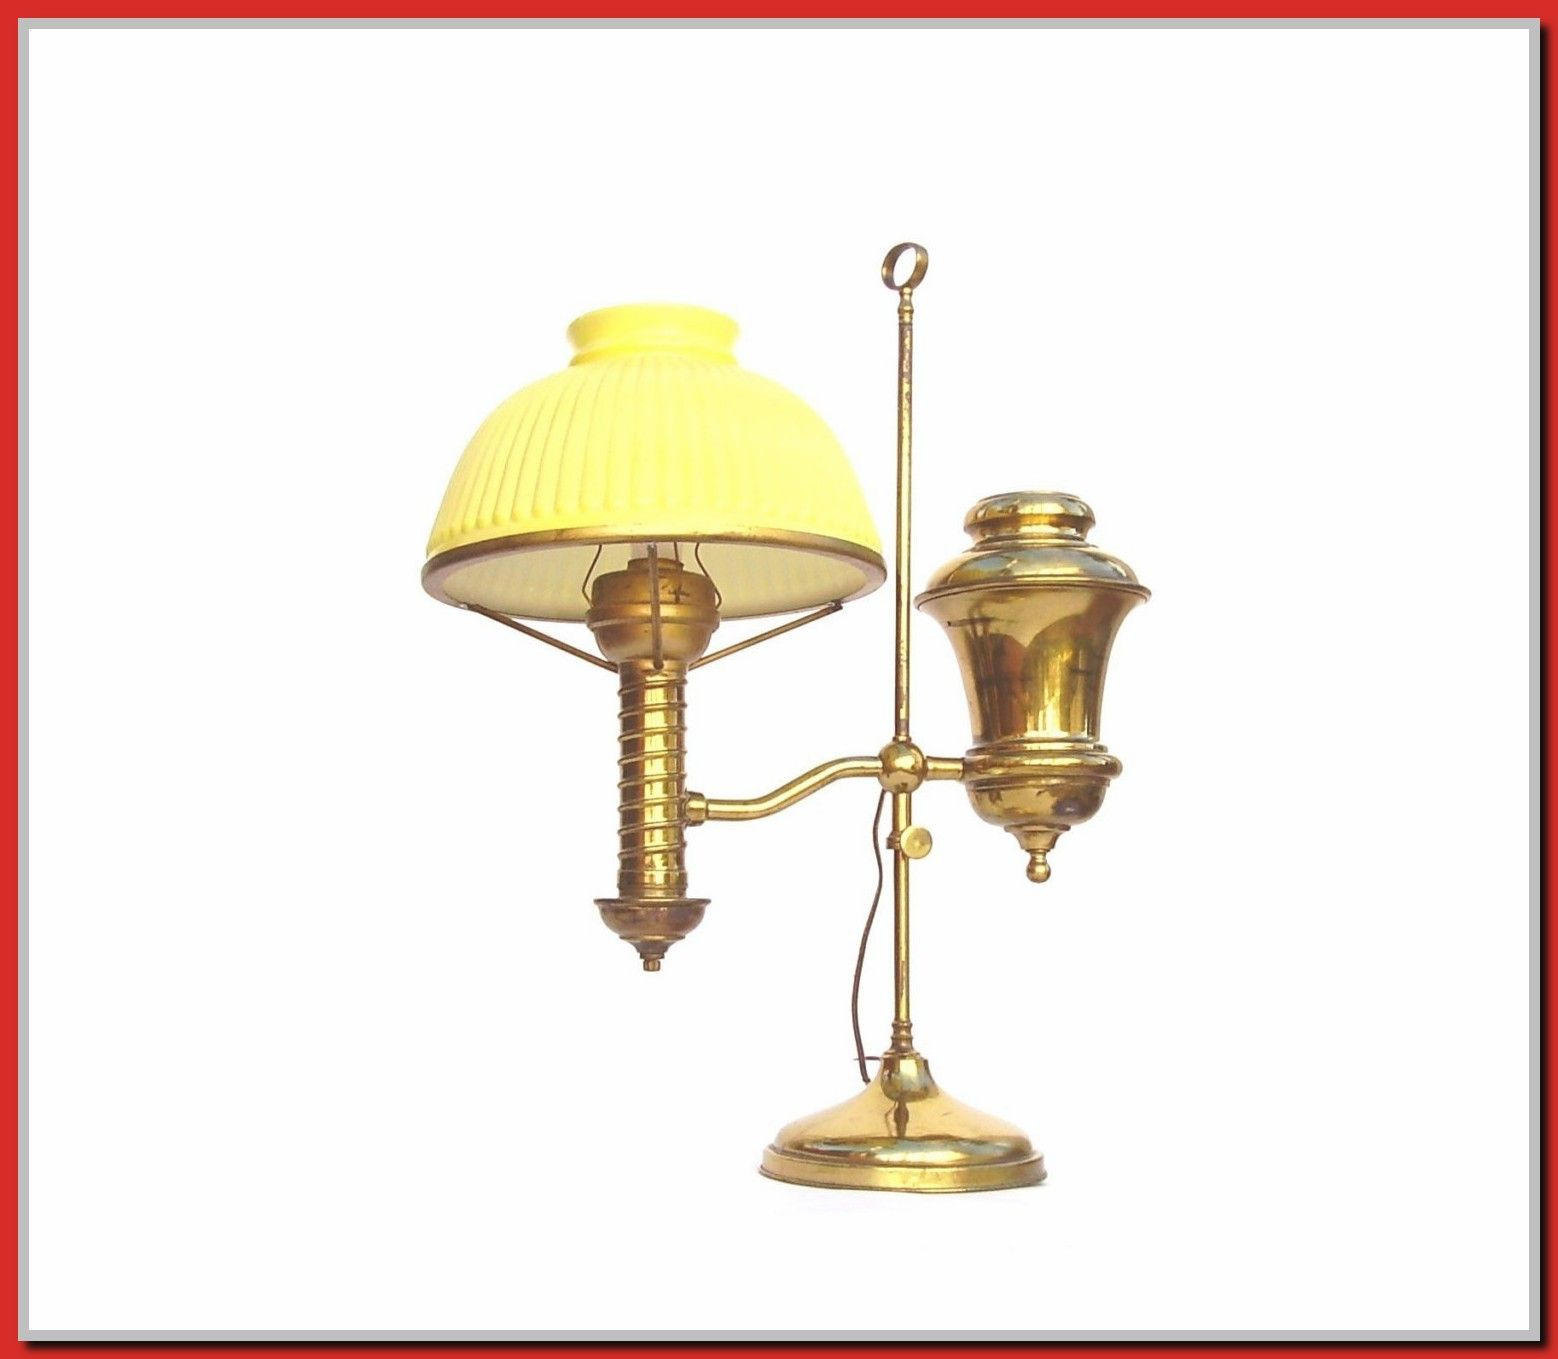 120 Reference Of Lamps Antique Antique Brass In 2020 Metal Lamp Shade Glass Lamp Shade Brass Lamp